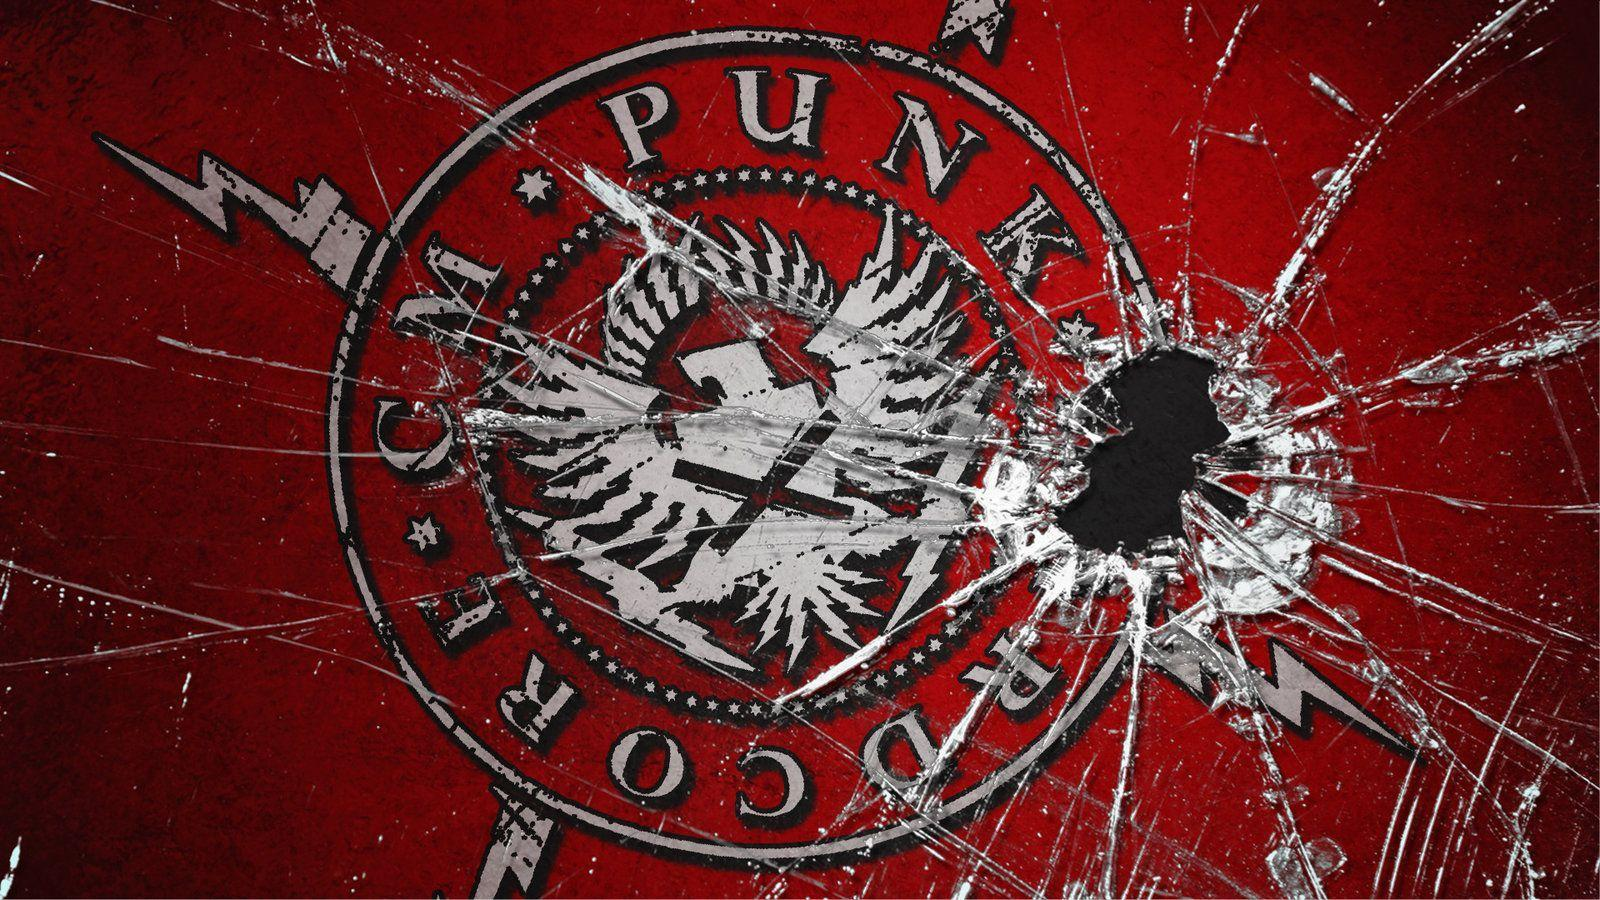 Cm punk logo wallpapers wallpaper cave for Wallpaper wallpaper wallpaper